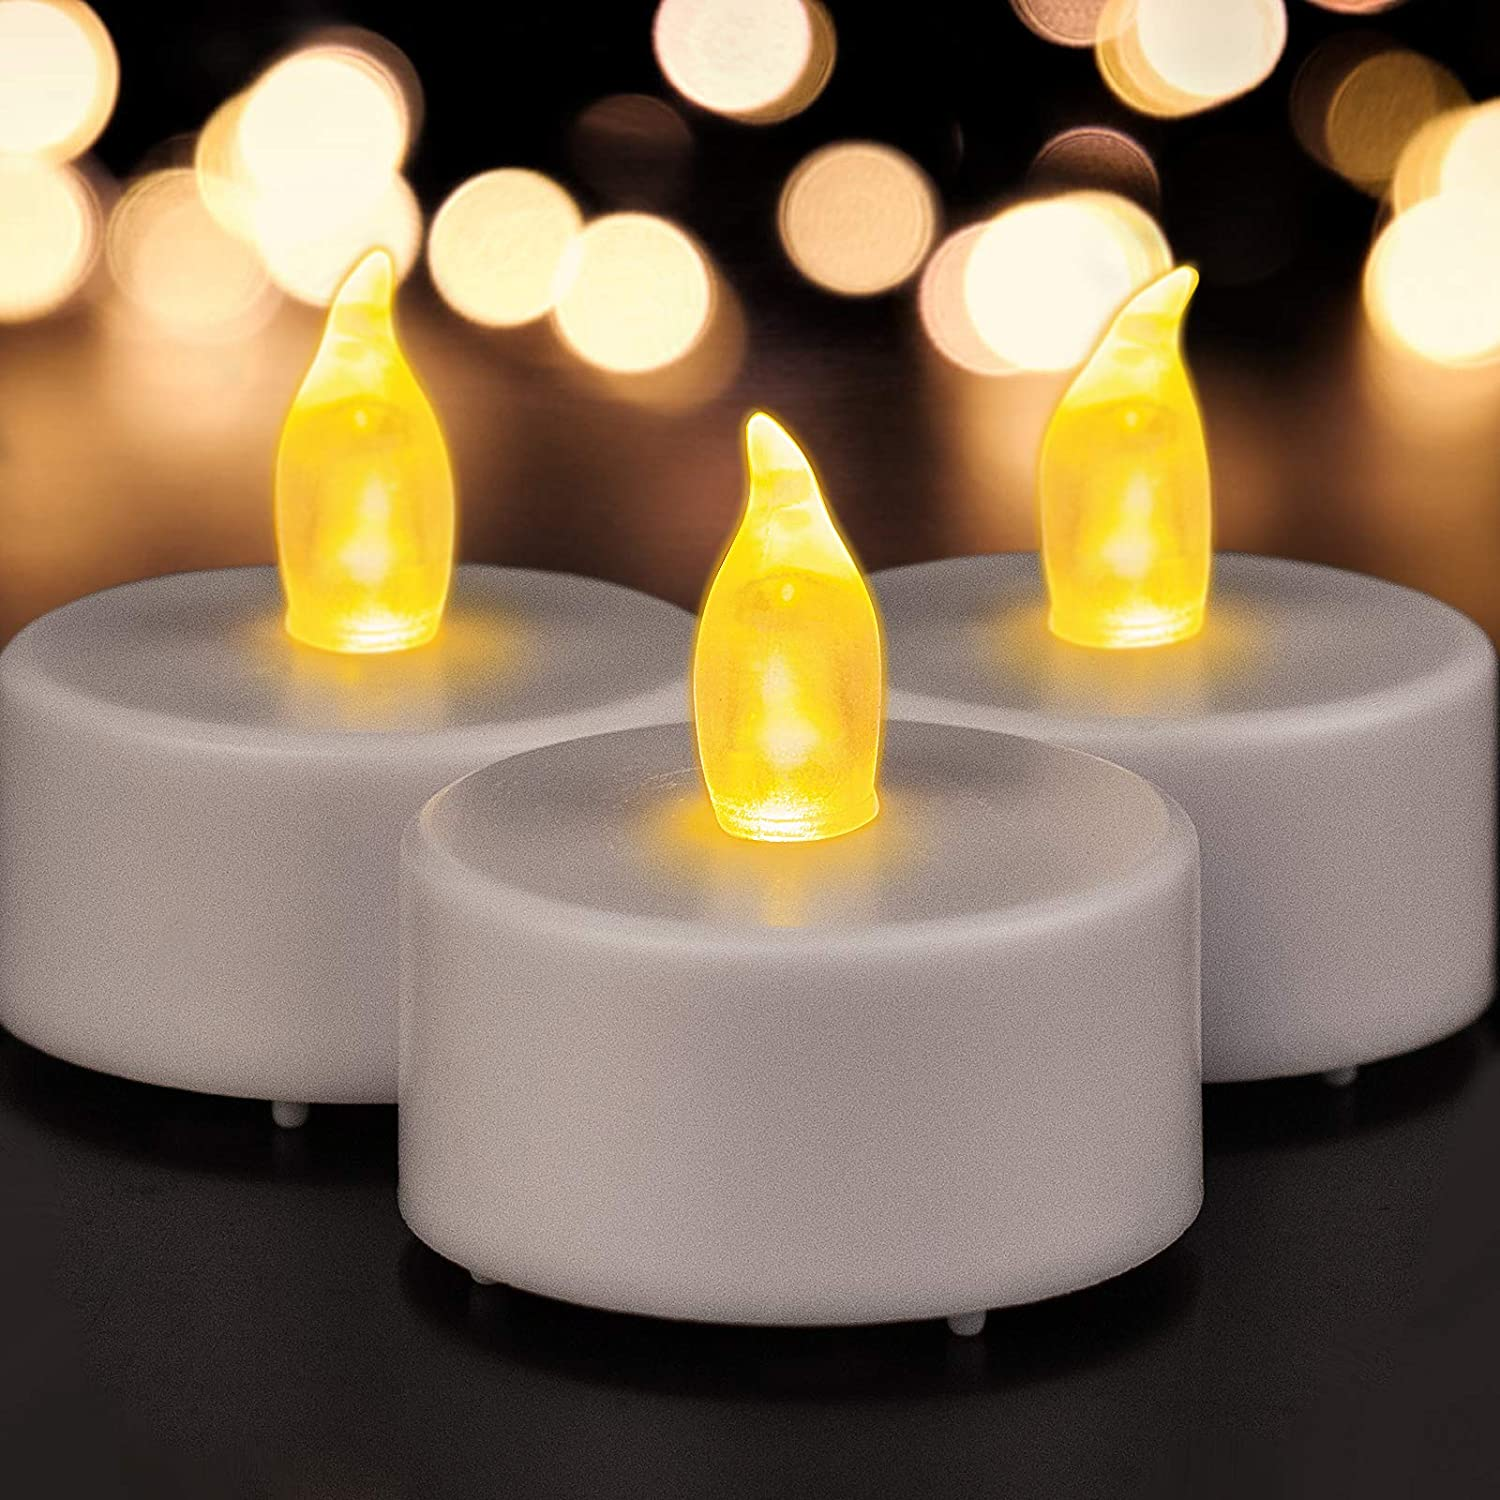 BENEVE Battery Operated Tea Lights Candles: 24 Pack Realistic and Bright Flickering Holiday Gift Flameless LED Electric Candles for Seasonal & Festival Party Home Decoration